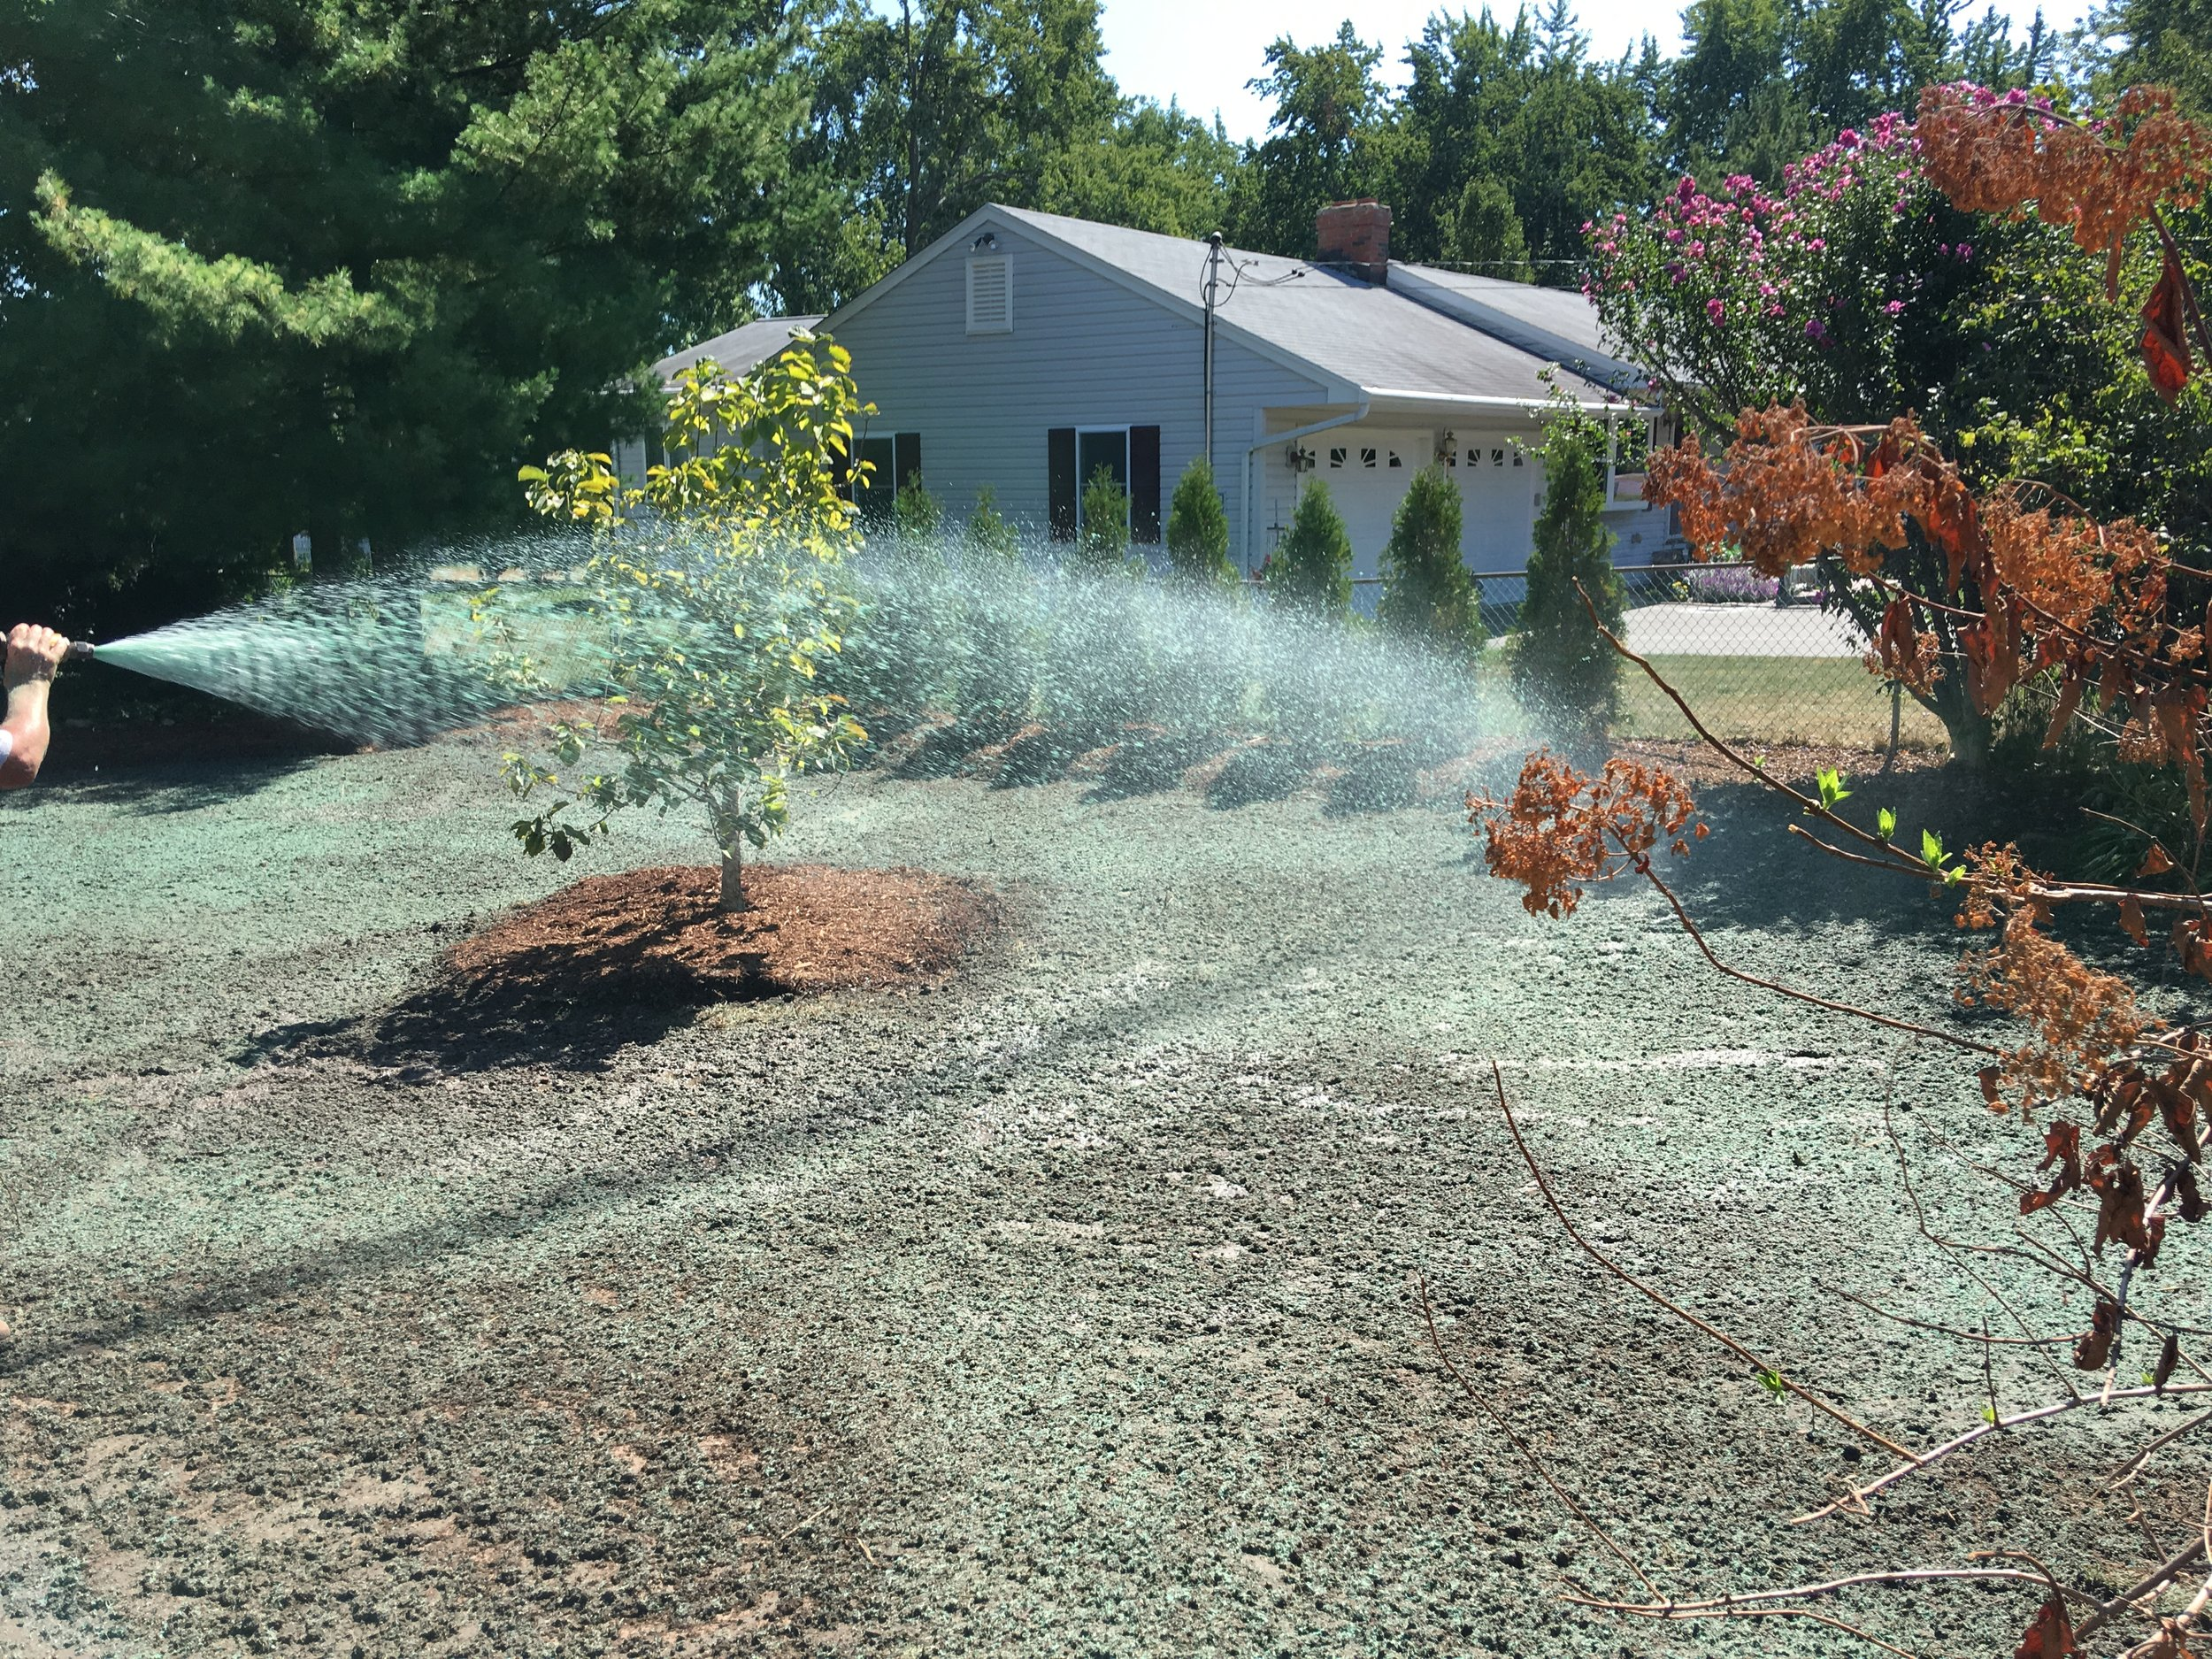 Landscapers spraying a dirt lot with grass seeds